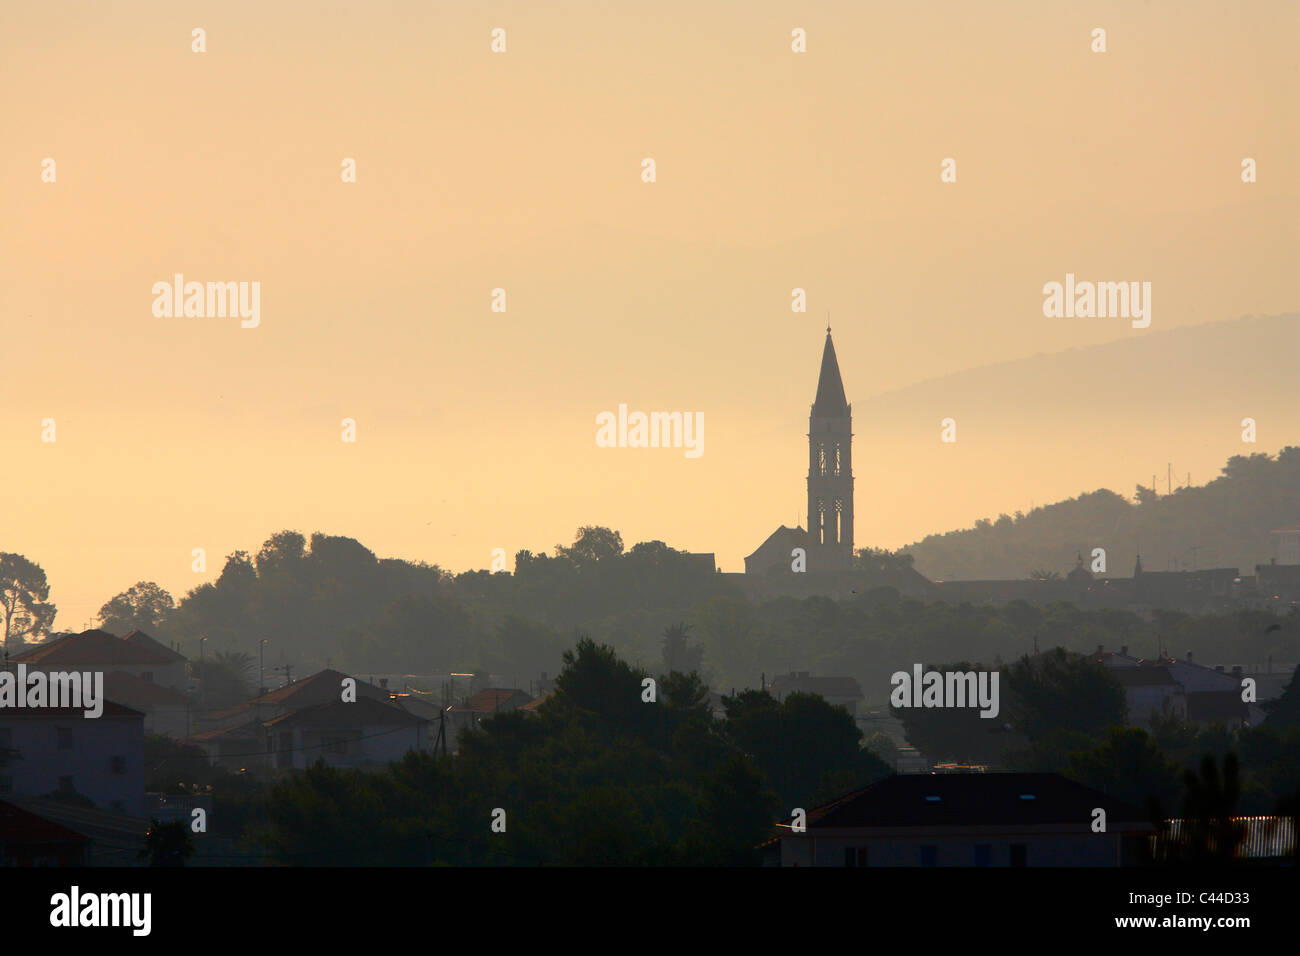 Silhouette of Cathedral  of st. Lawrence in Trogir town - Stock Image